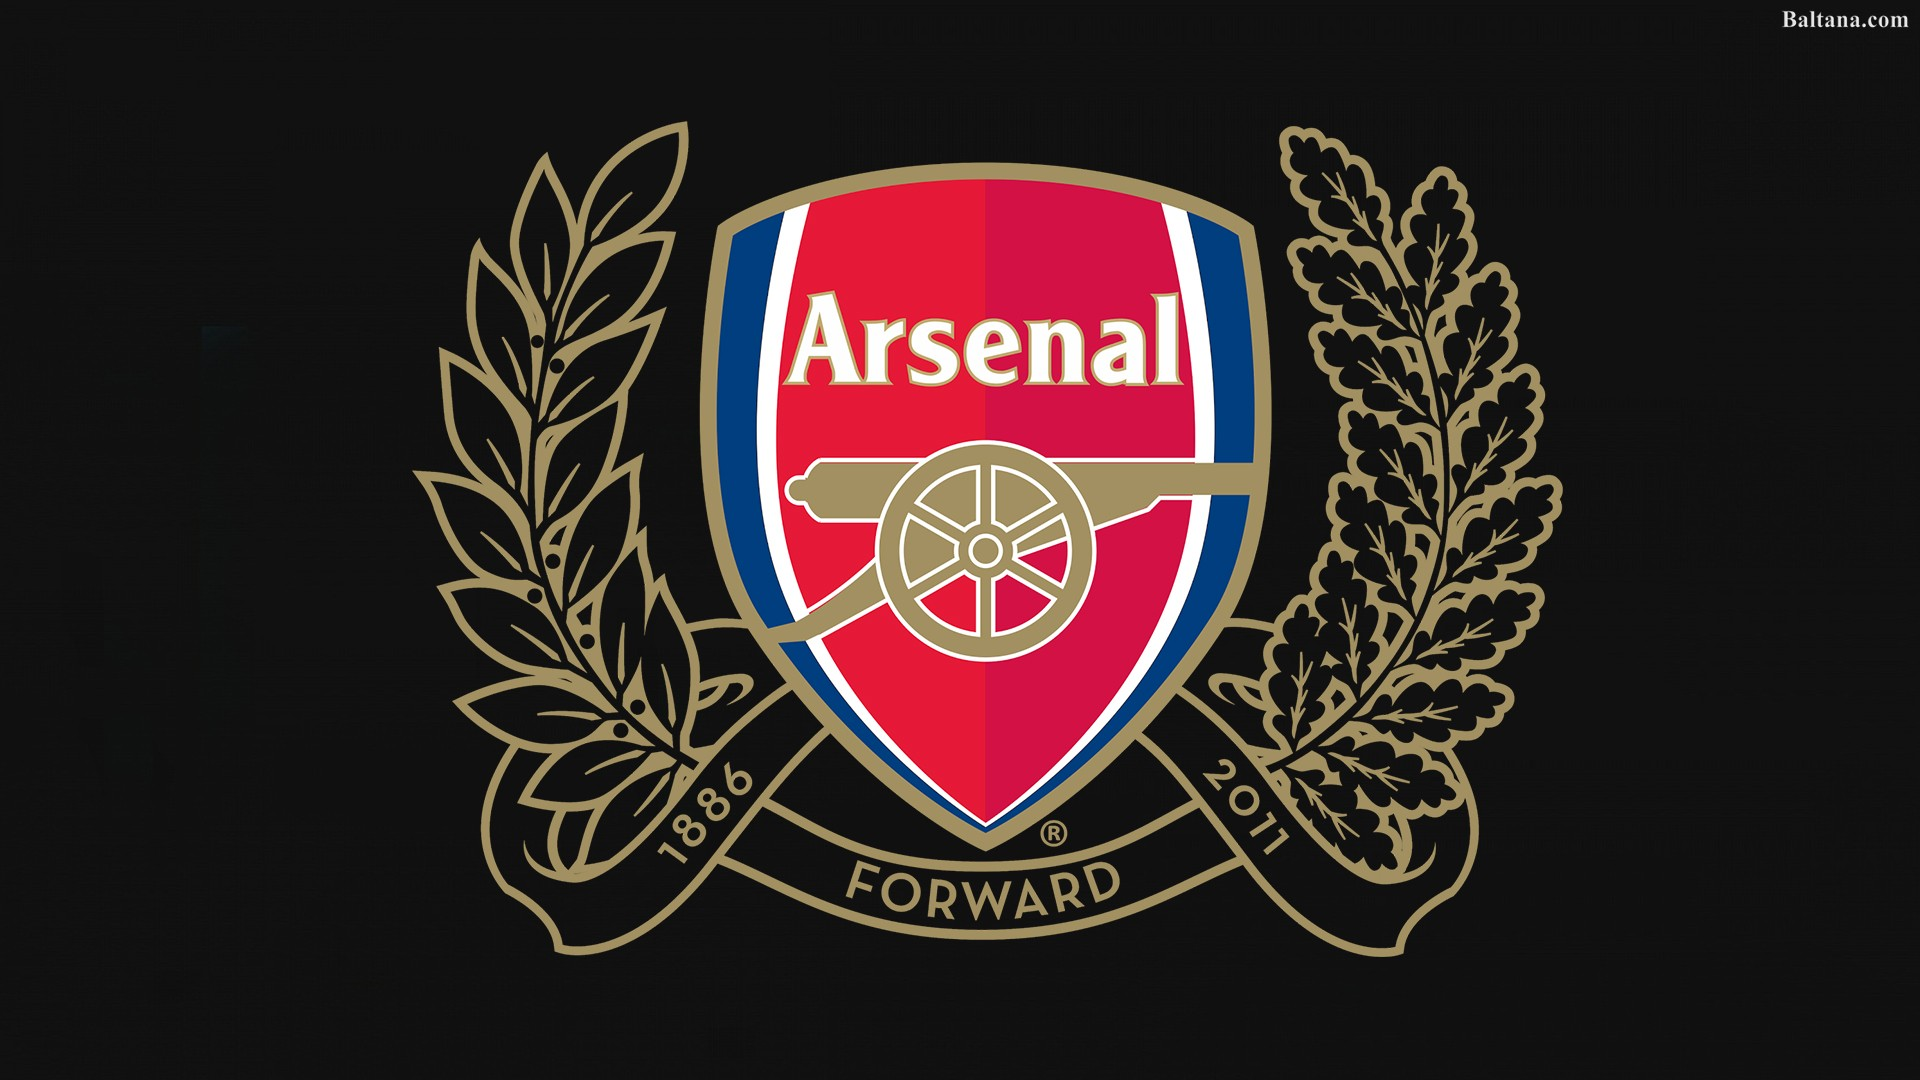 c hd desktop wallpaper arsenal fc